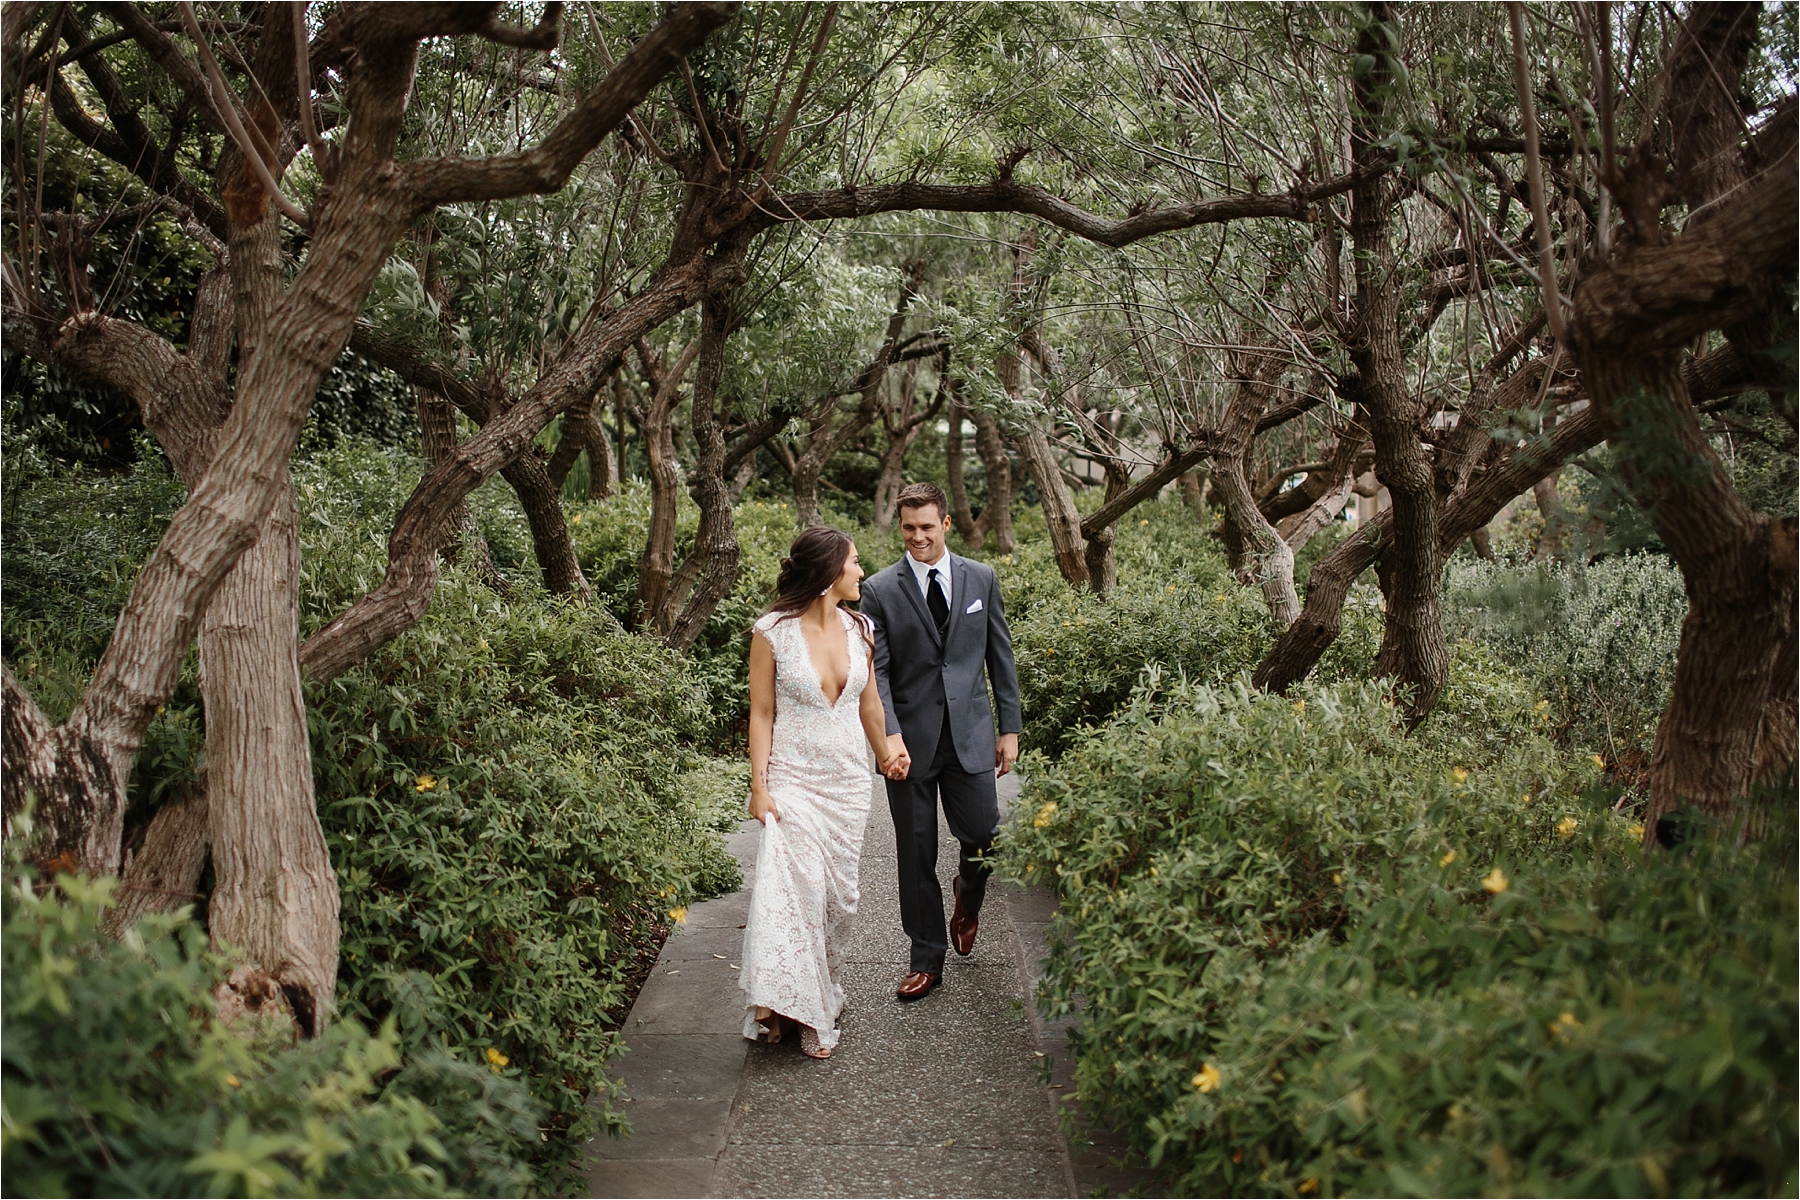 Devyn + Caden __ a Dallas Arboretum Garden Style Wedding by North Texas Wedding Photographer Rachel Meagan Photography __ 049